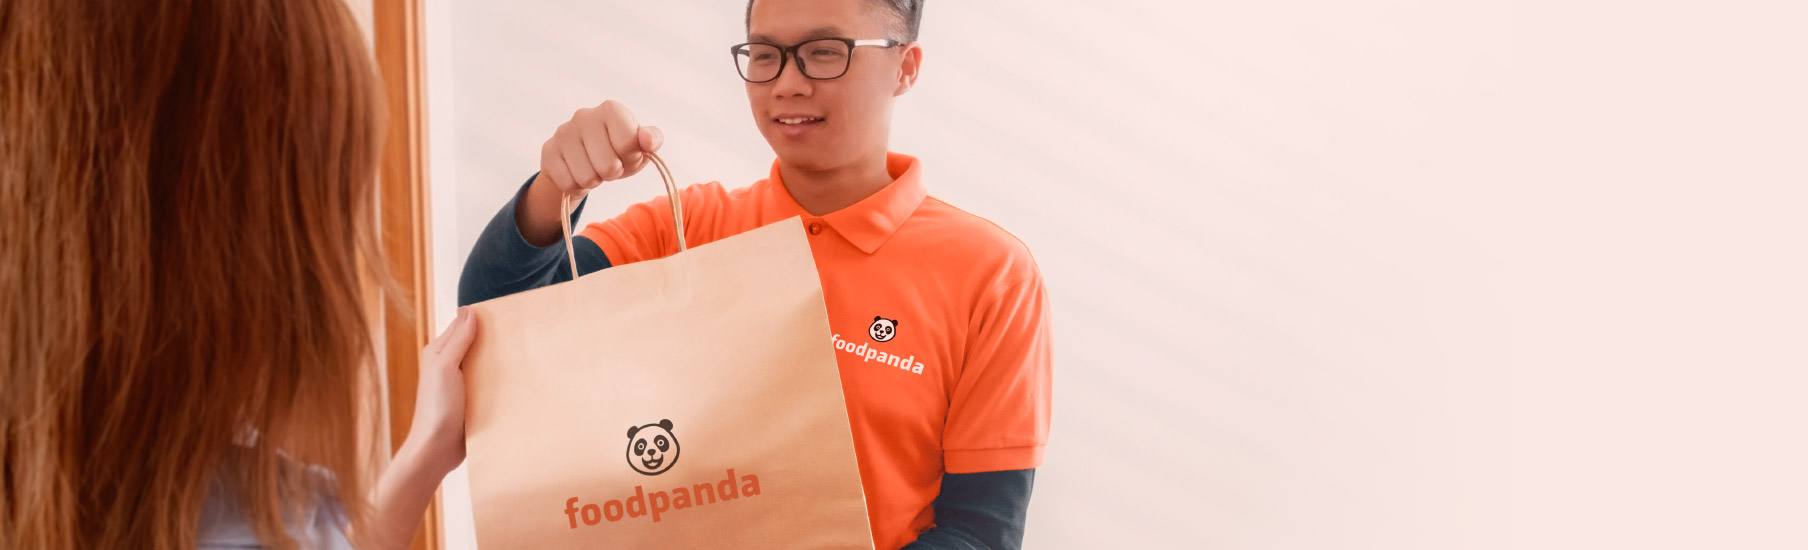 Foodpanda increases revenue by 518% and orders by 428%